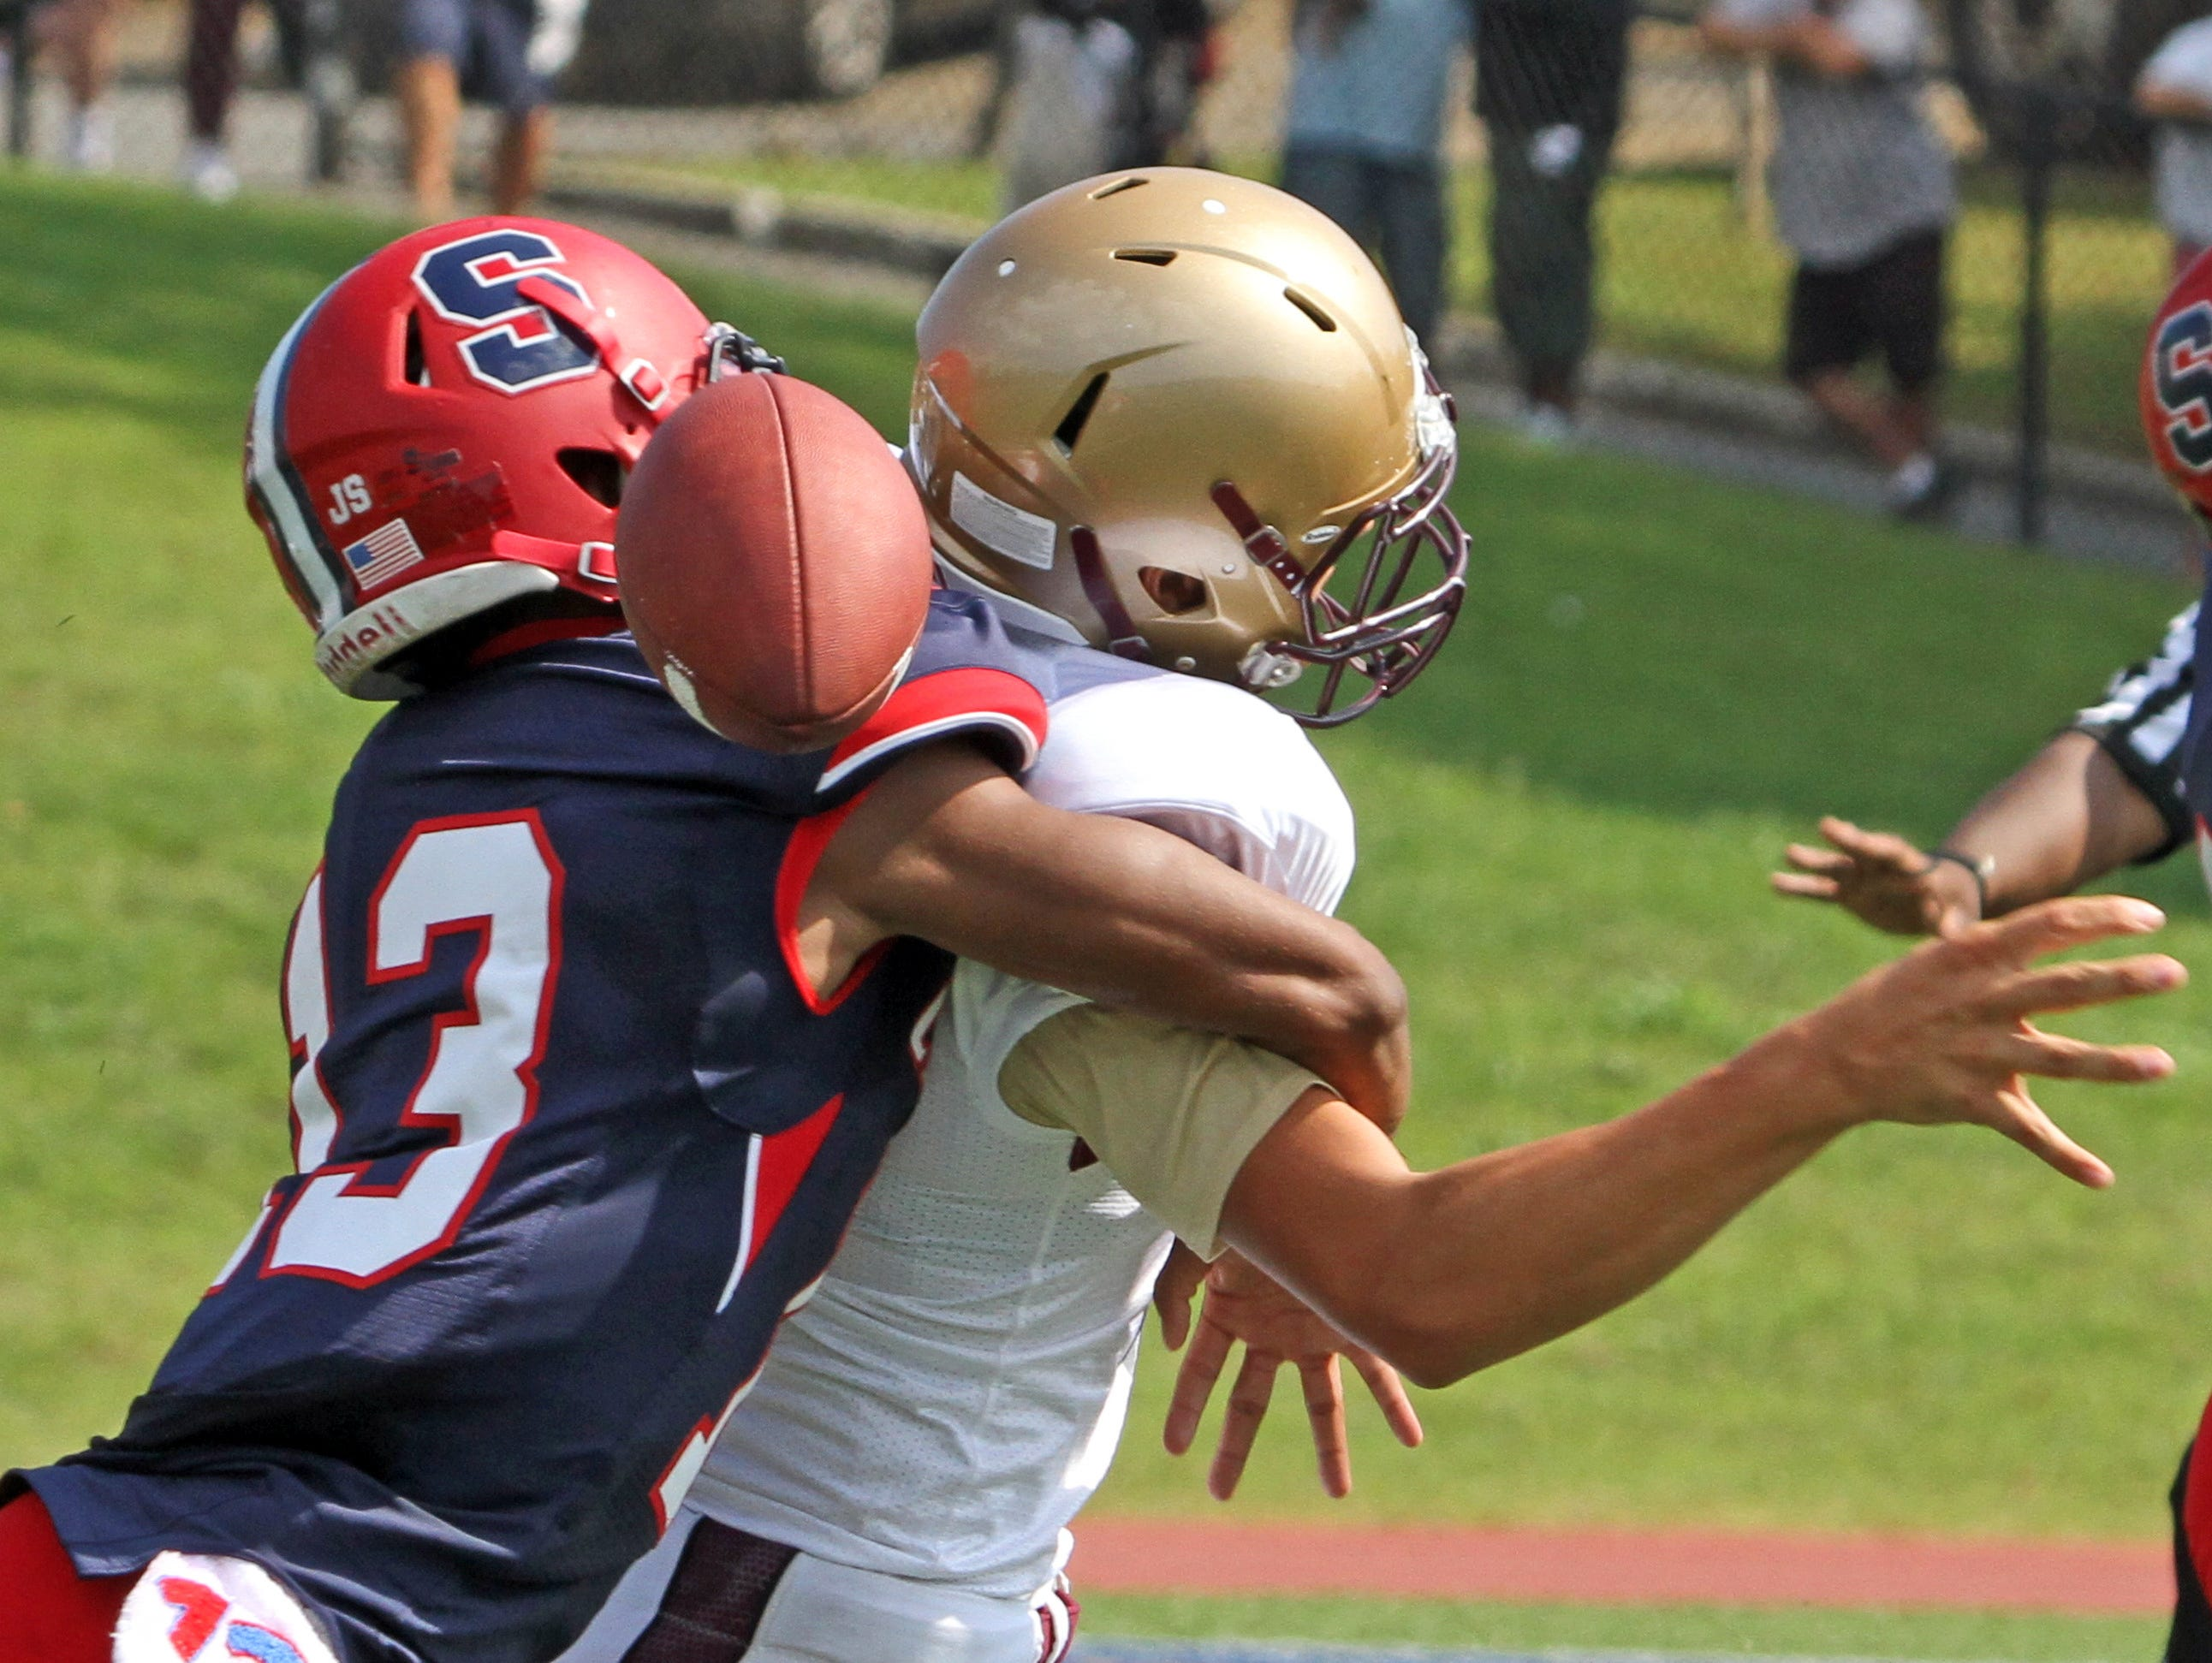 Stepinac's Devante Reid forces Iona Prep quarterback Michael Apostolopoulos to fumble during a varsity football game at Stepinac High School Sept. 19, 2015. Stepinac crushed Iona Prep 48-6.